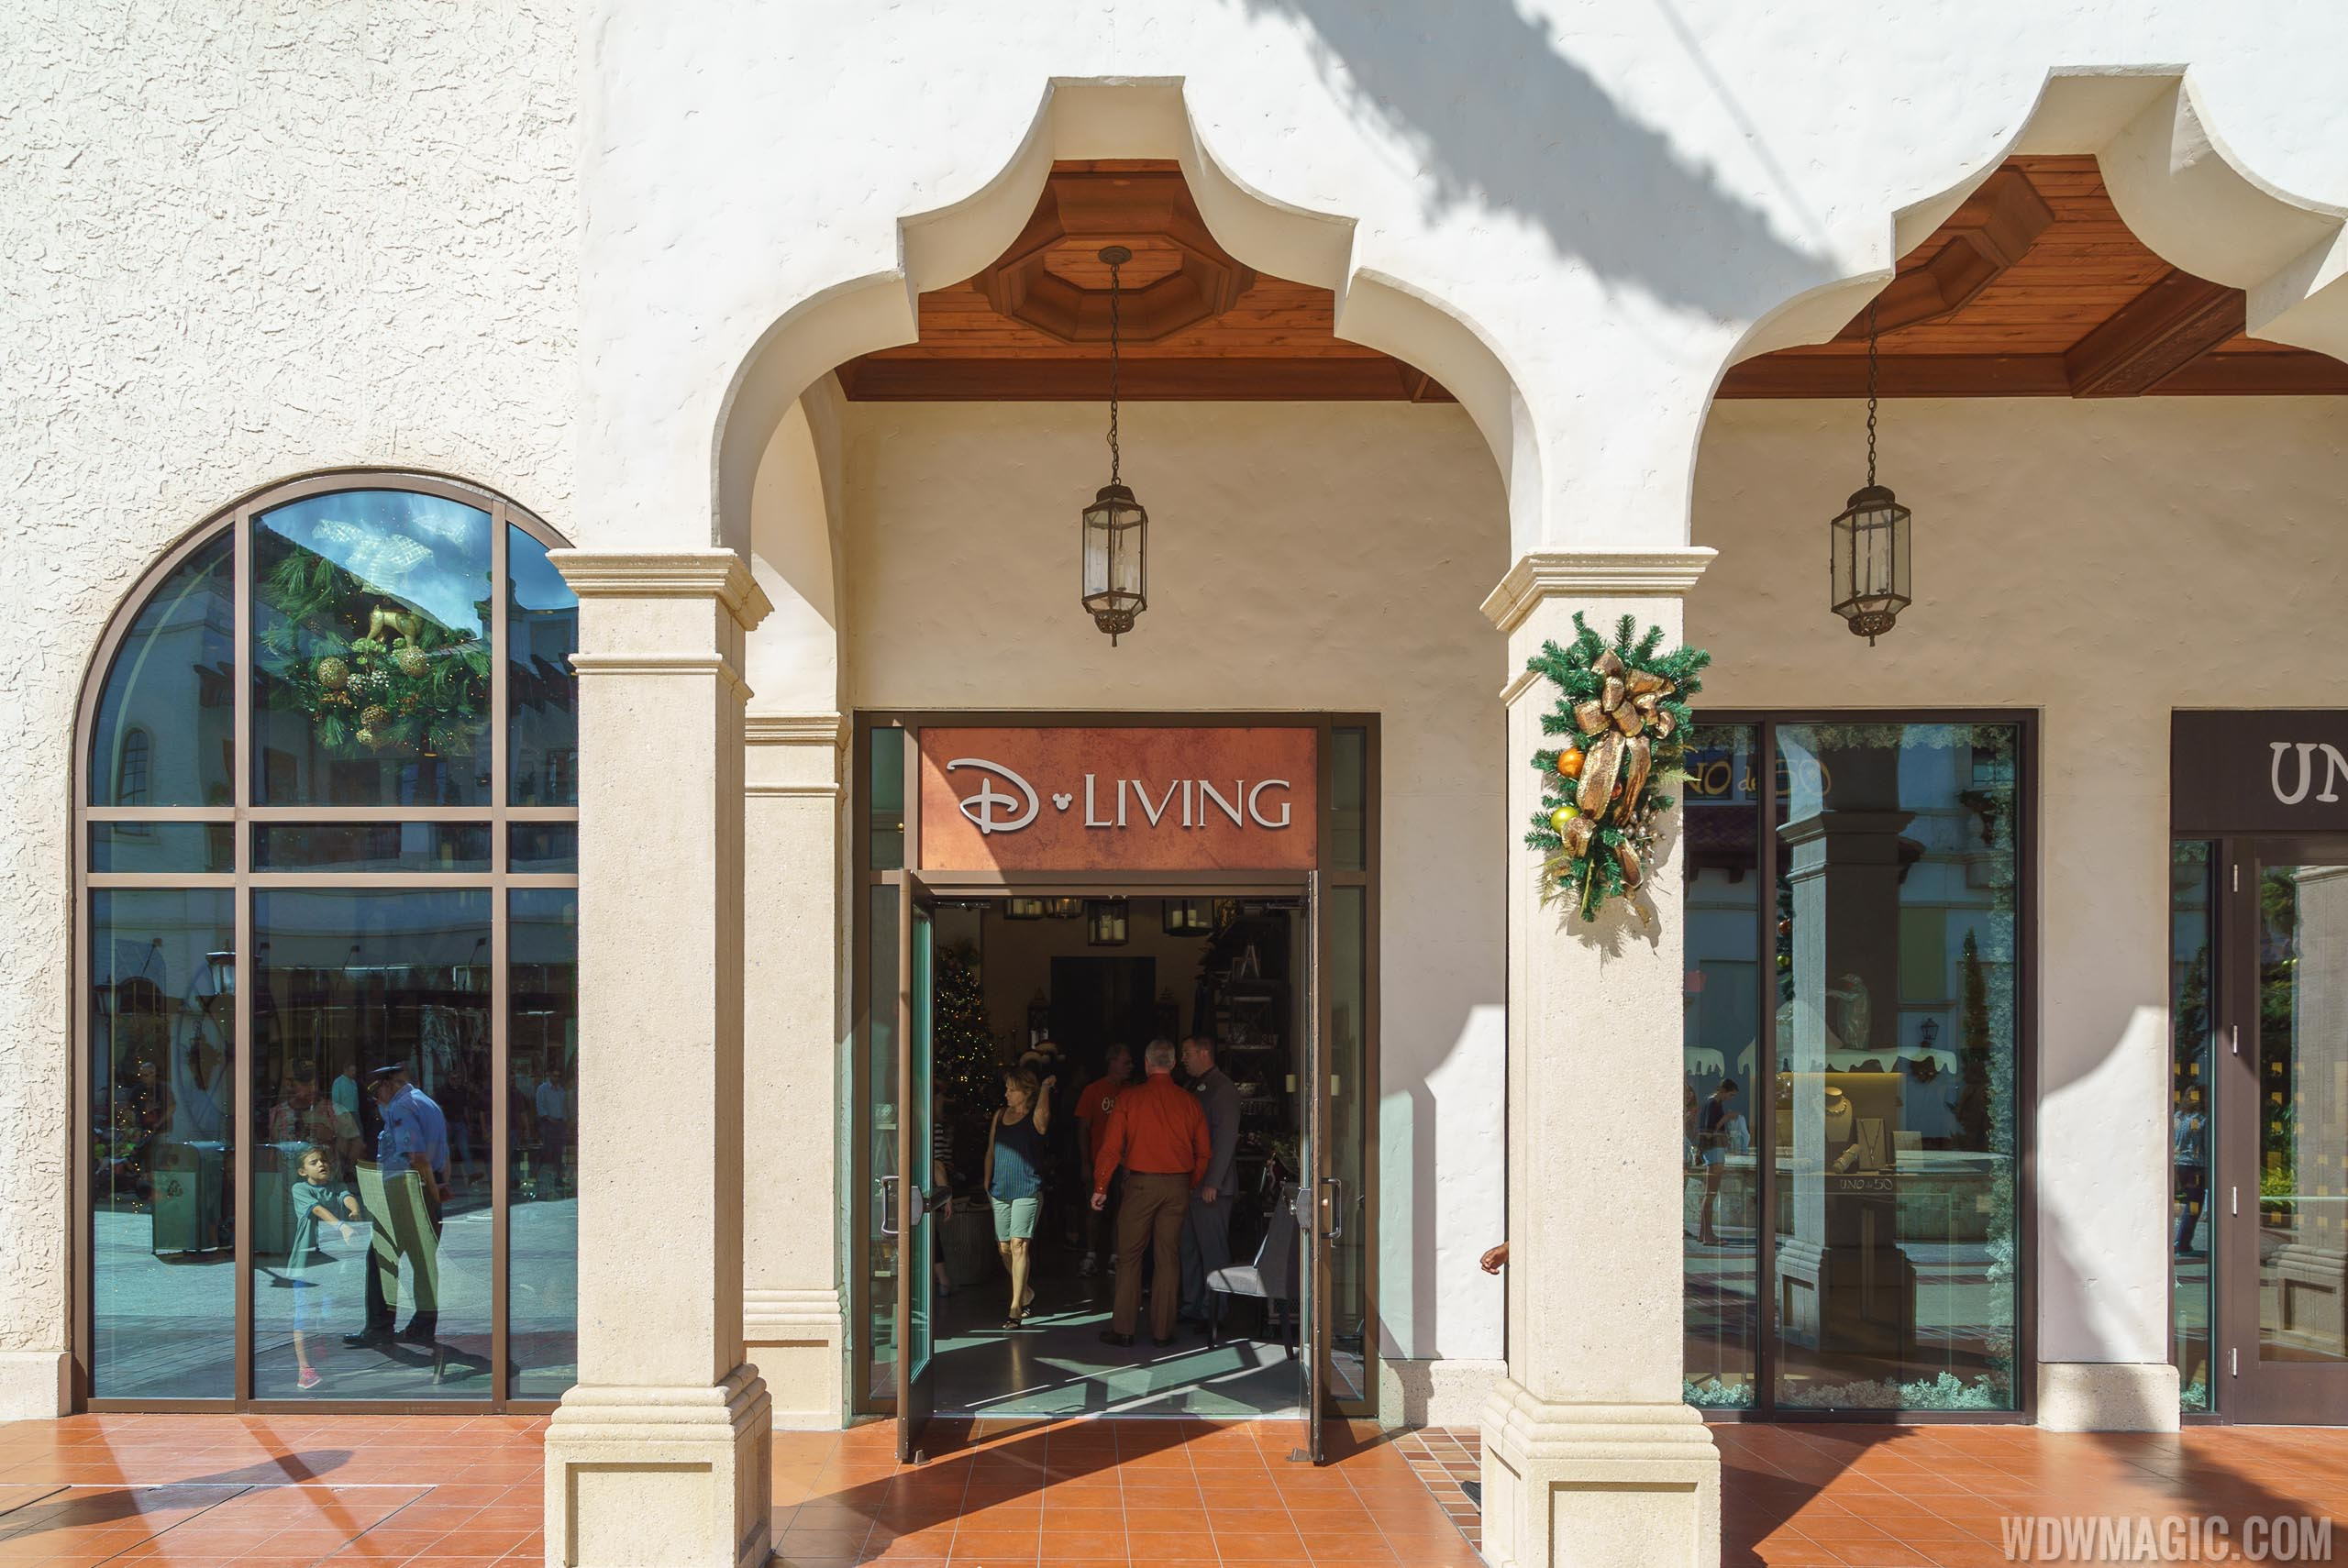 D Living photos d living opens in the town center at disney springs